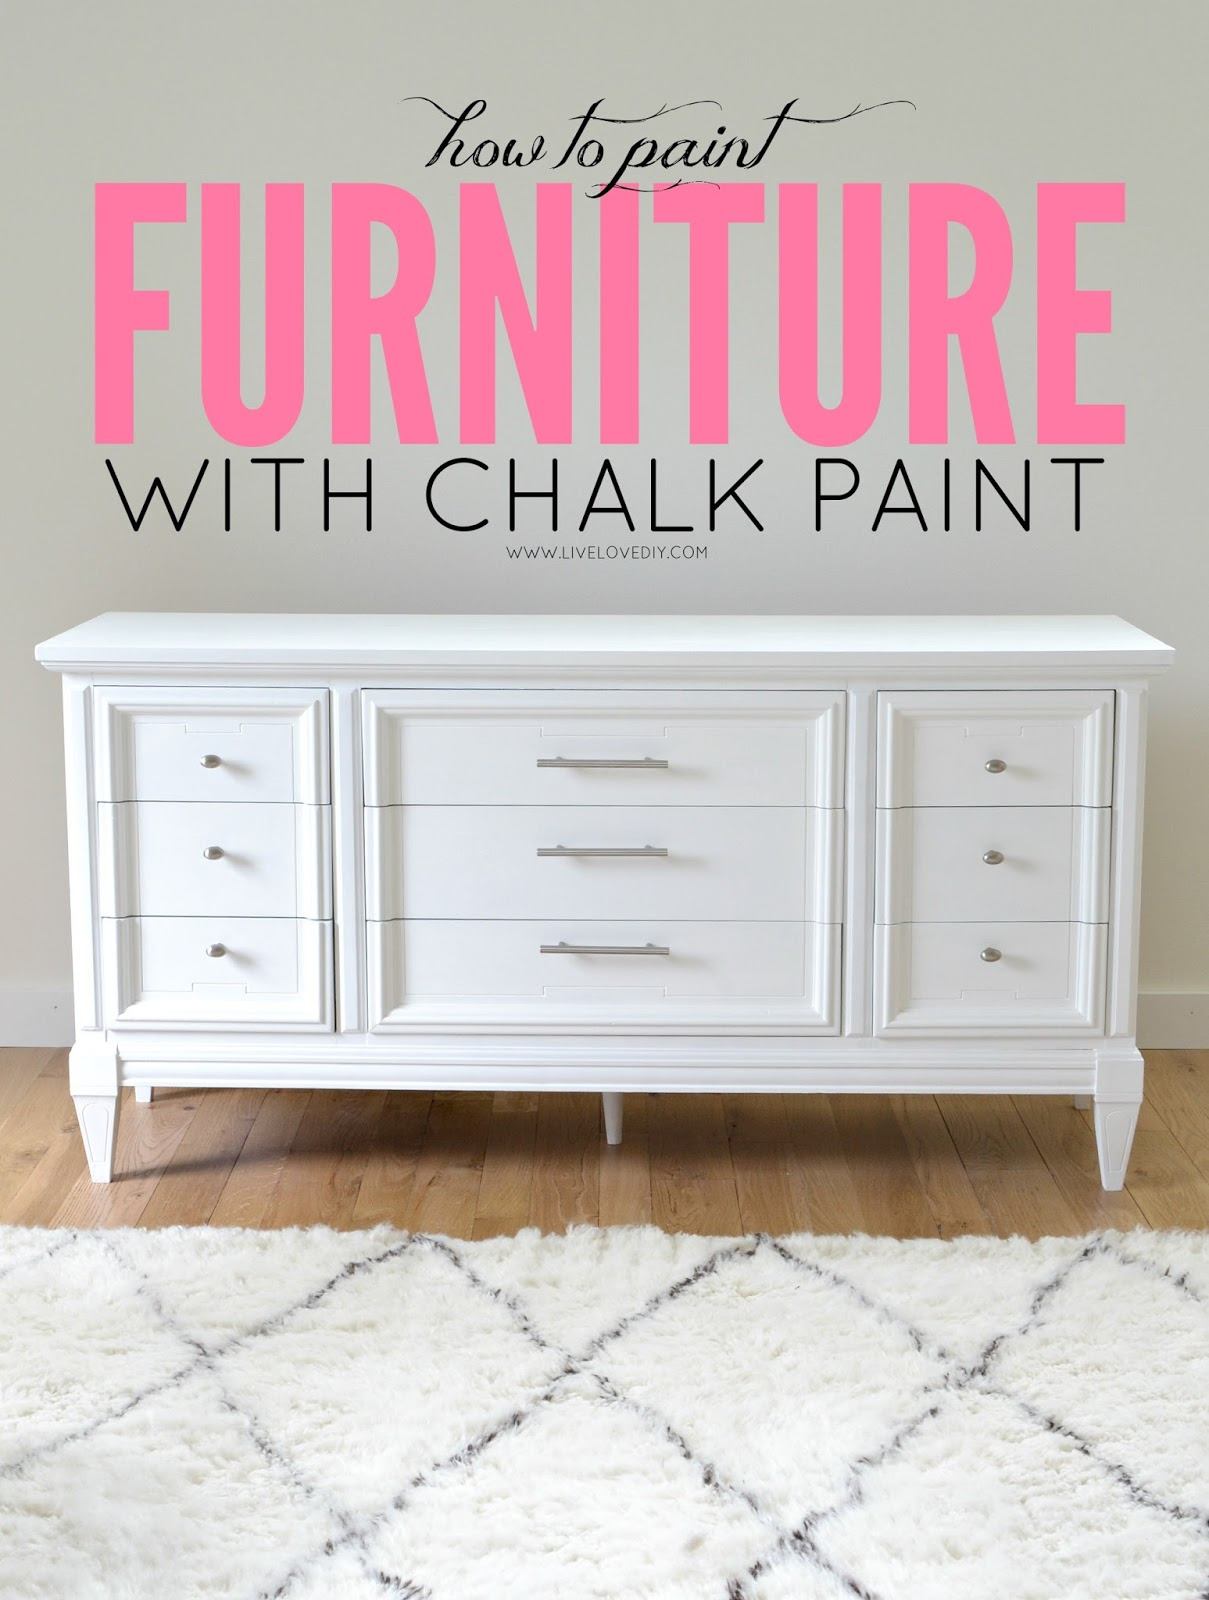 HOW TO PAINT FURNITURE WITH CHALK PAINT JPG